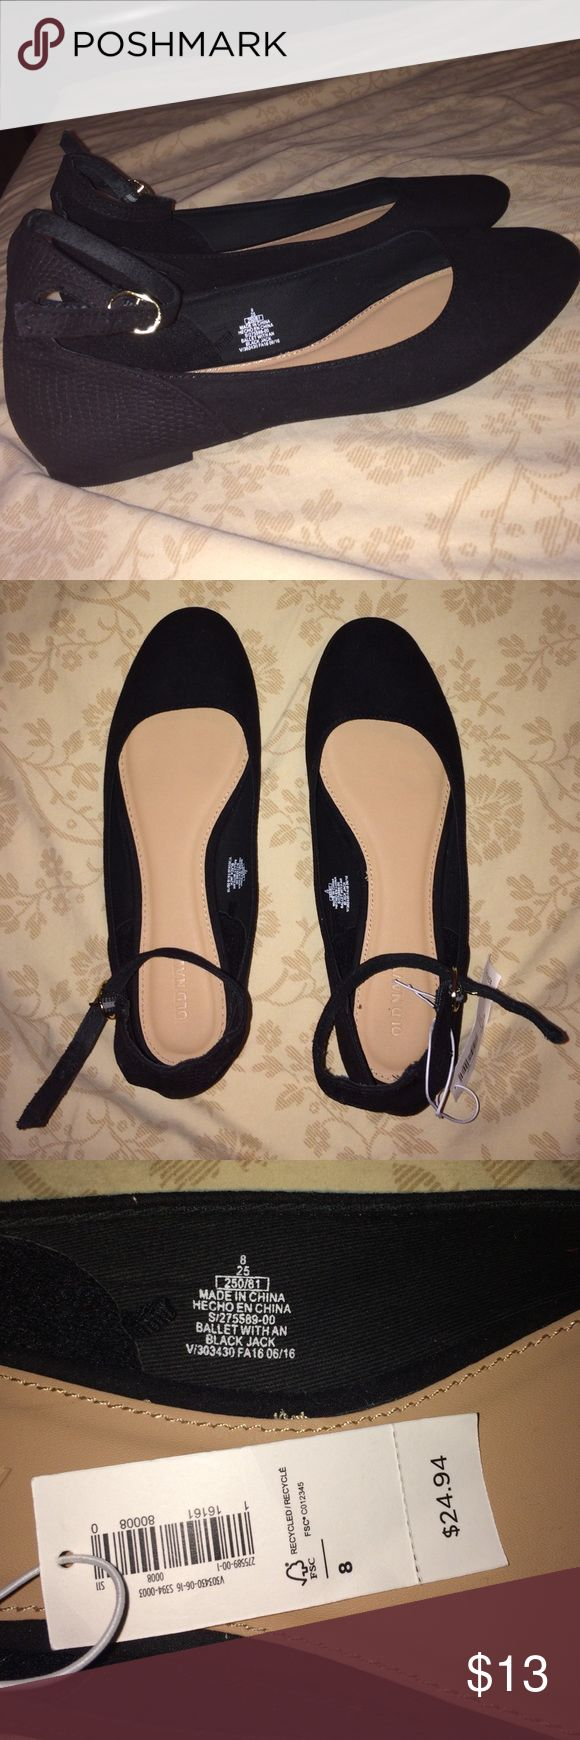 Old Navy ballet flats Old Navy Flats Shoes Old Navy Shoes Flats & Loafers